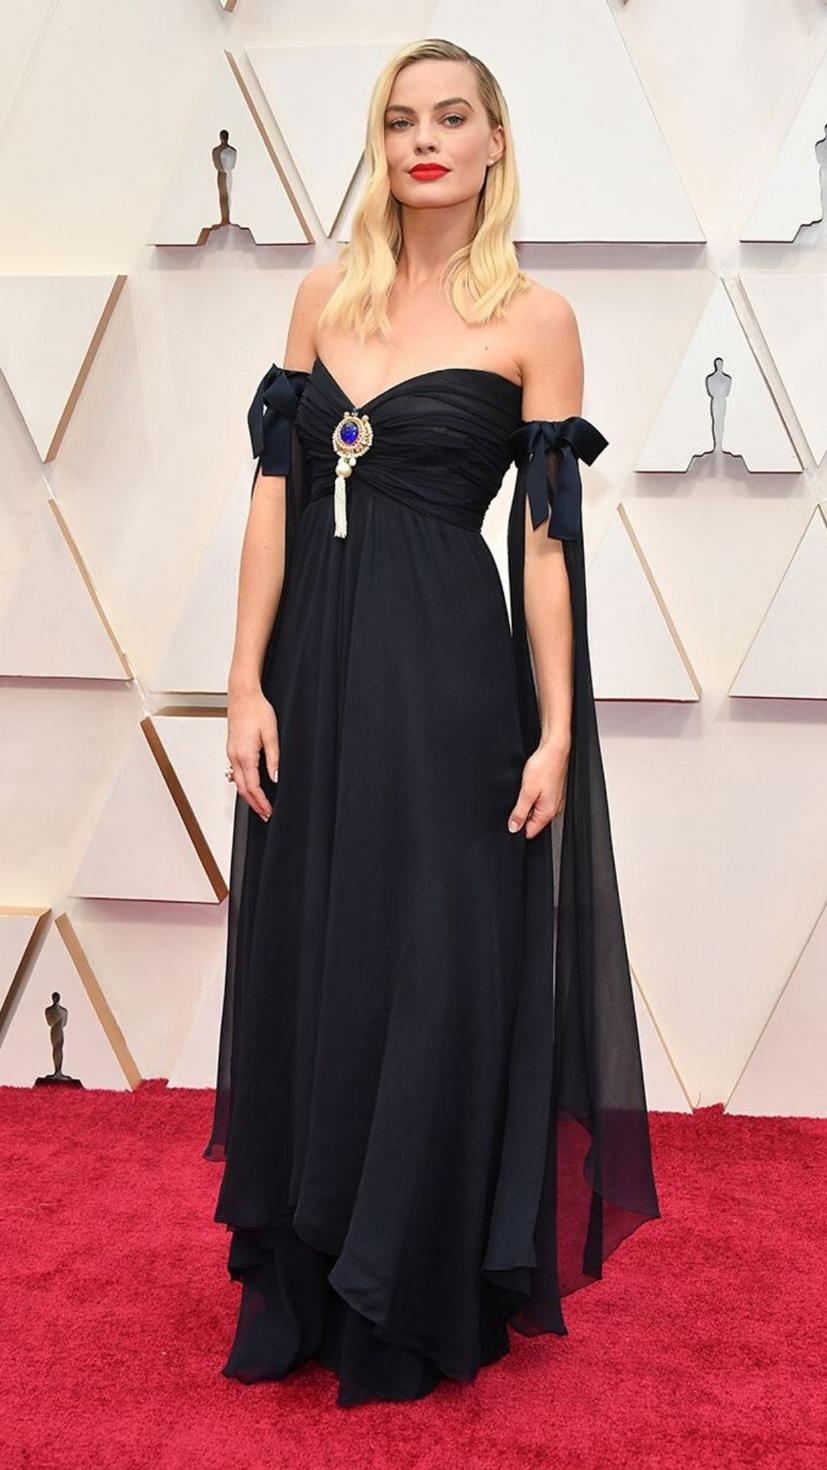 Margot Robbie wears a gown and jewellery from Chanel